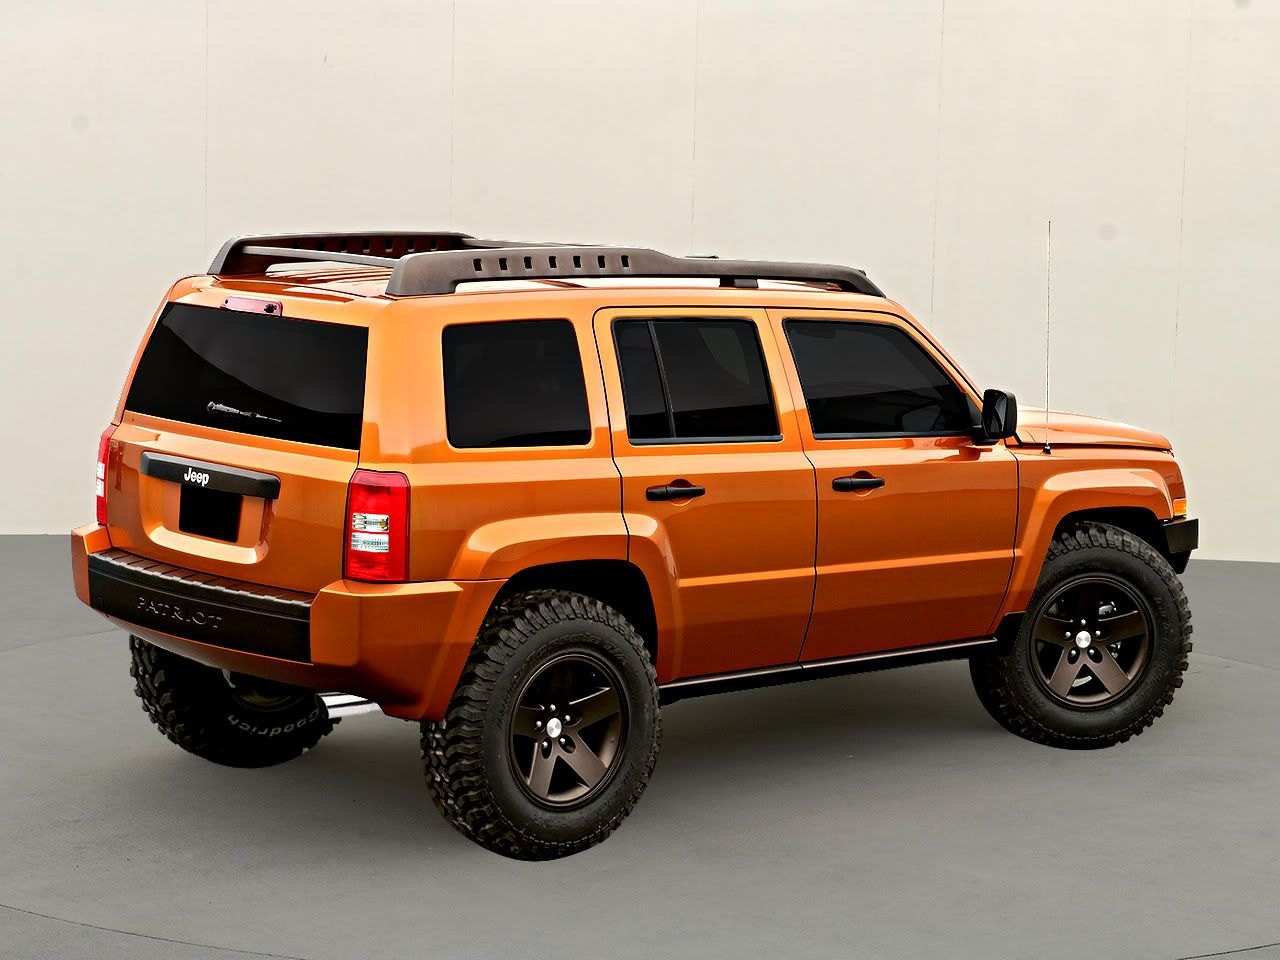 jeep patriot projector lights - Google Search   *Cars ...